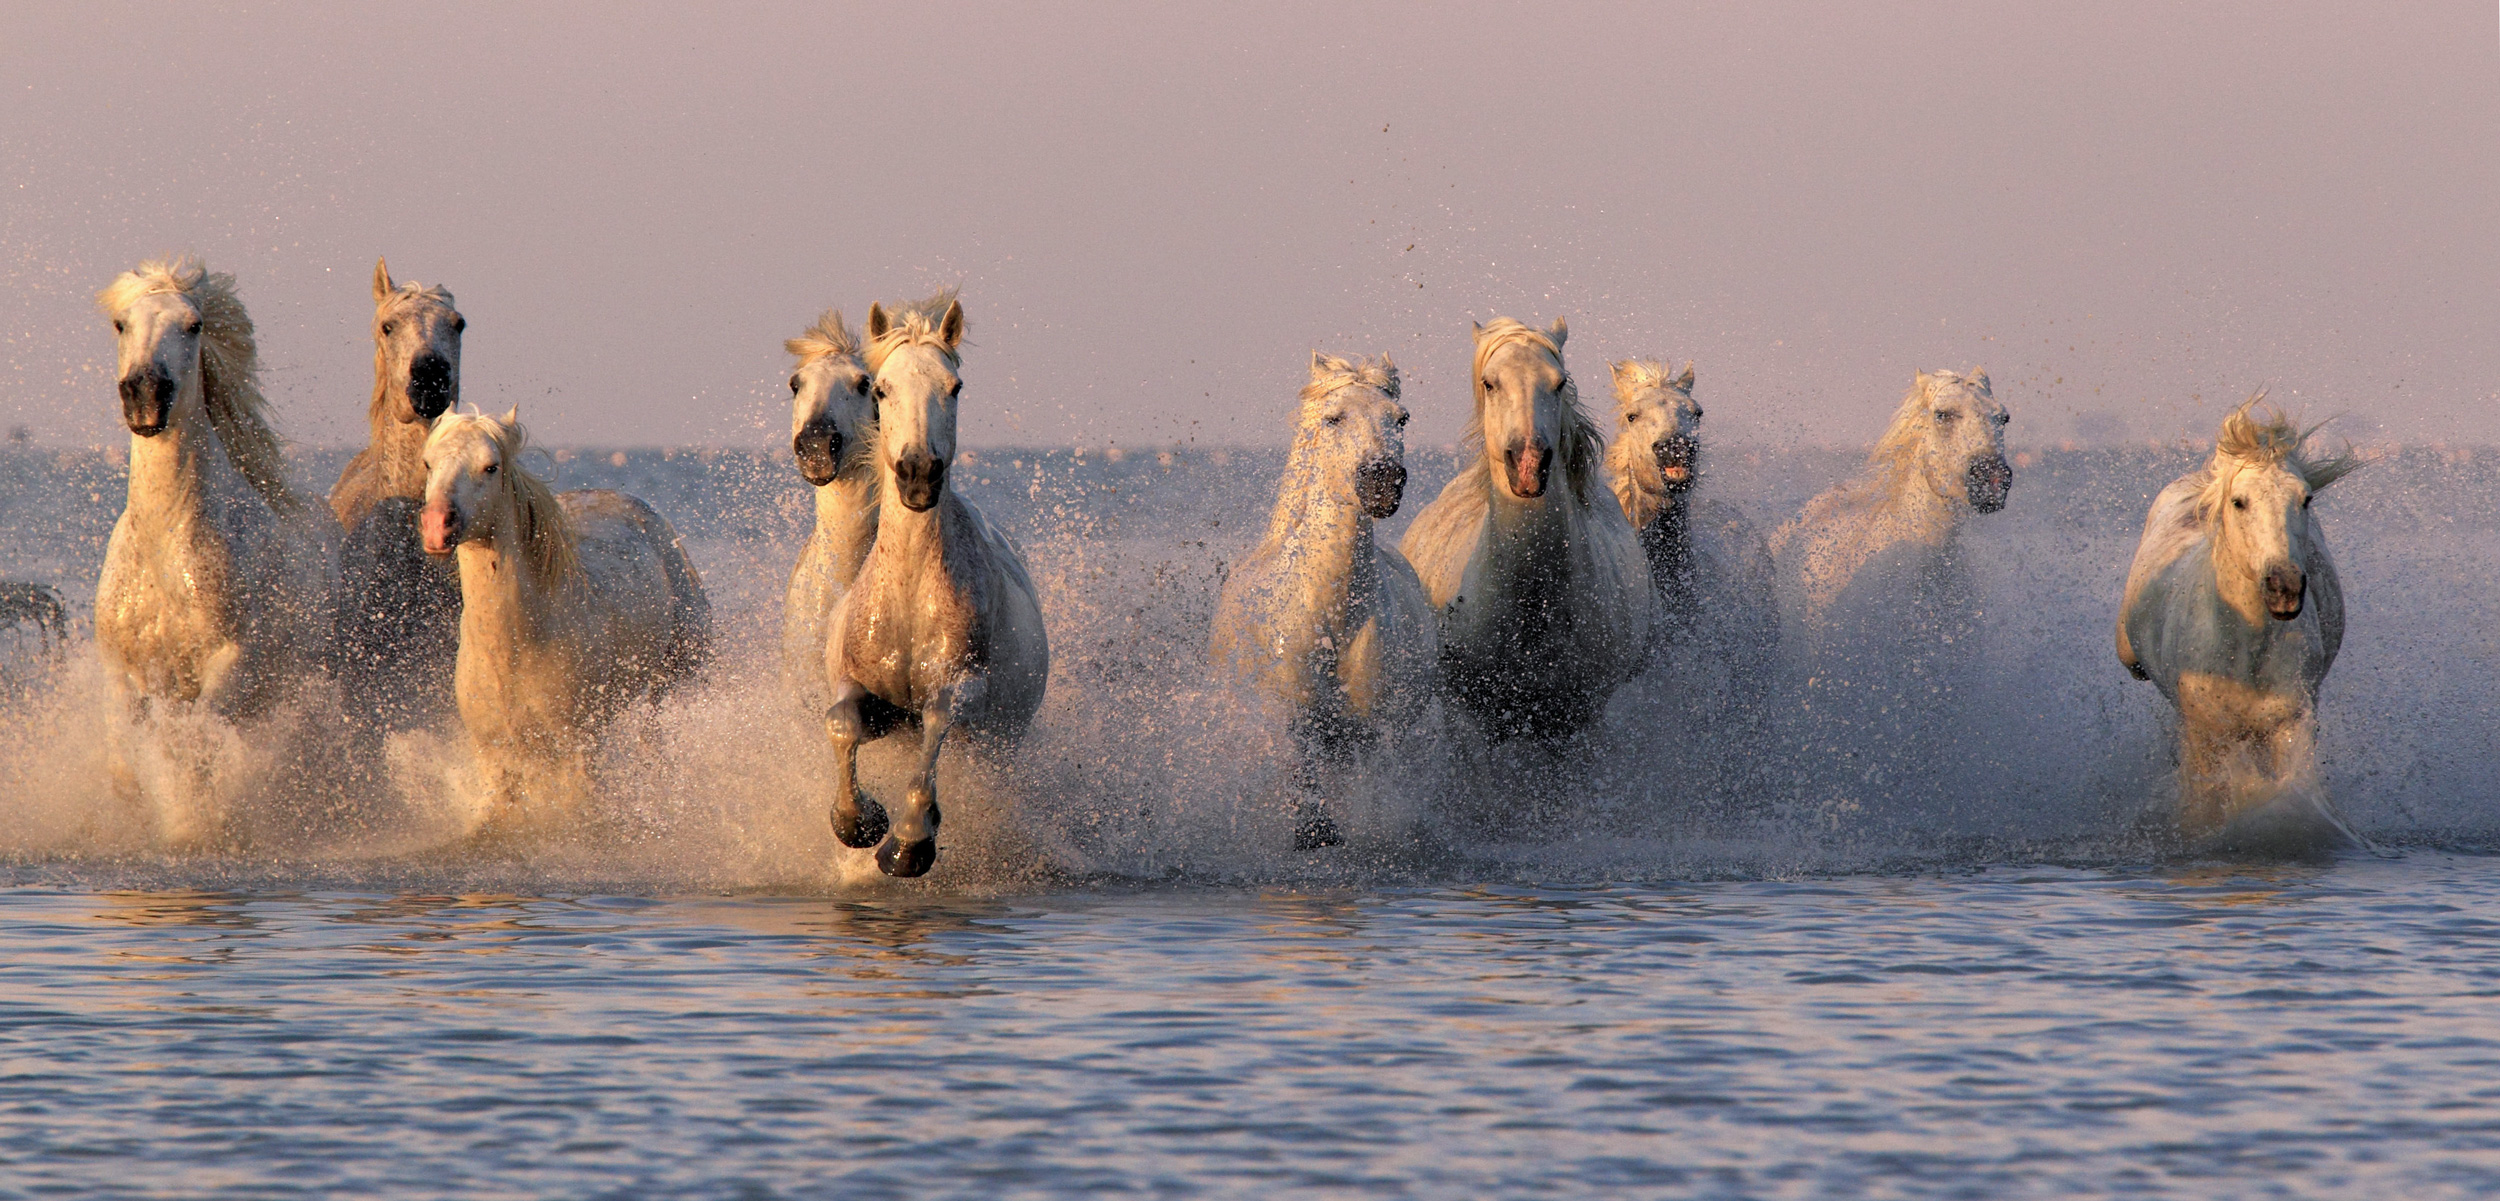 Horses have adapted to nearly every environment, including the world's coasts. Photo by FLPA/Alamy Stock Photo